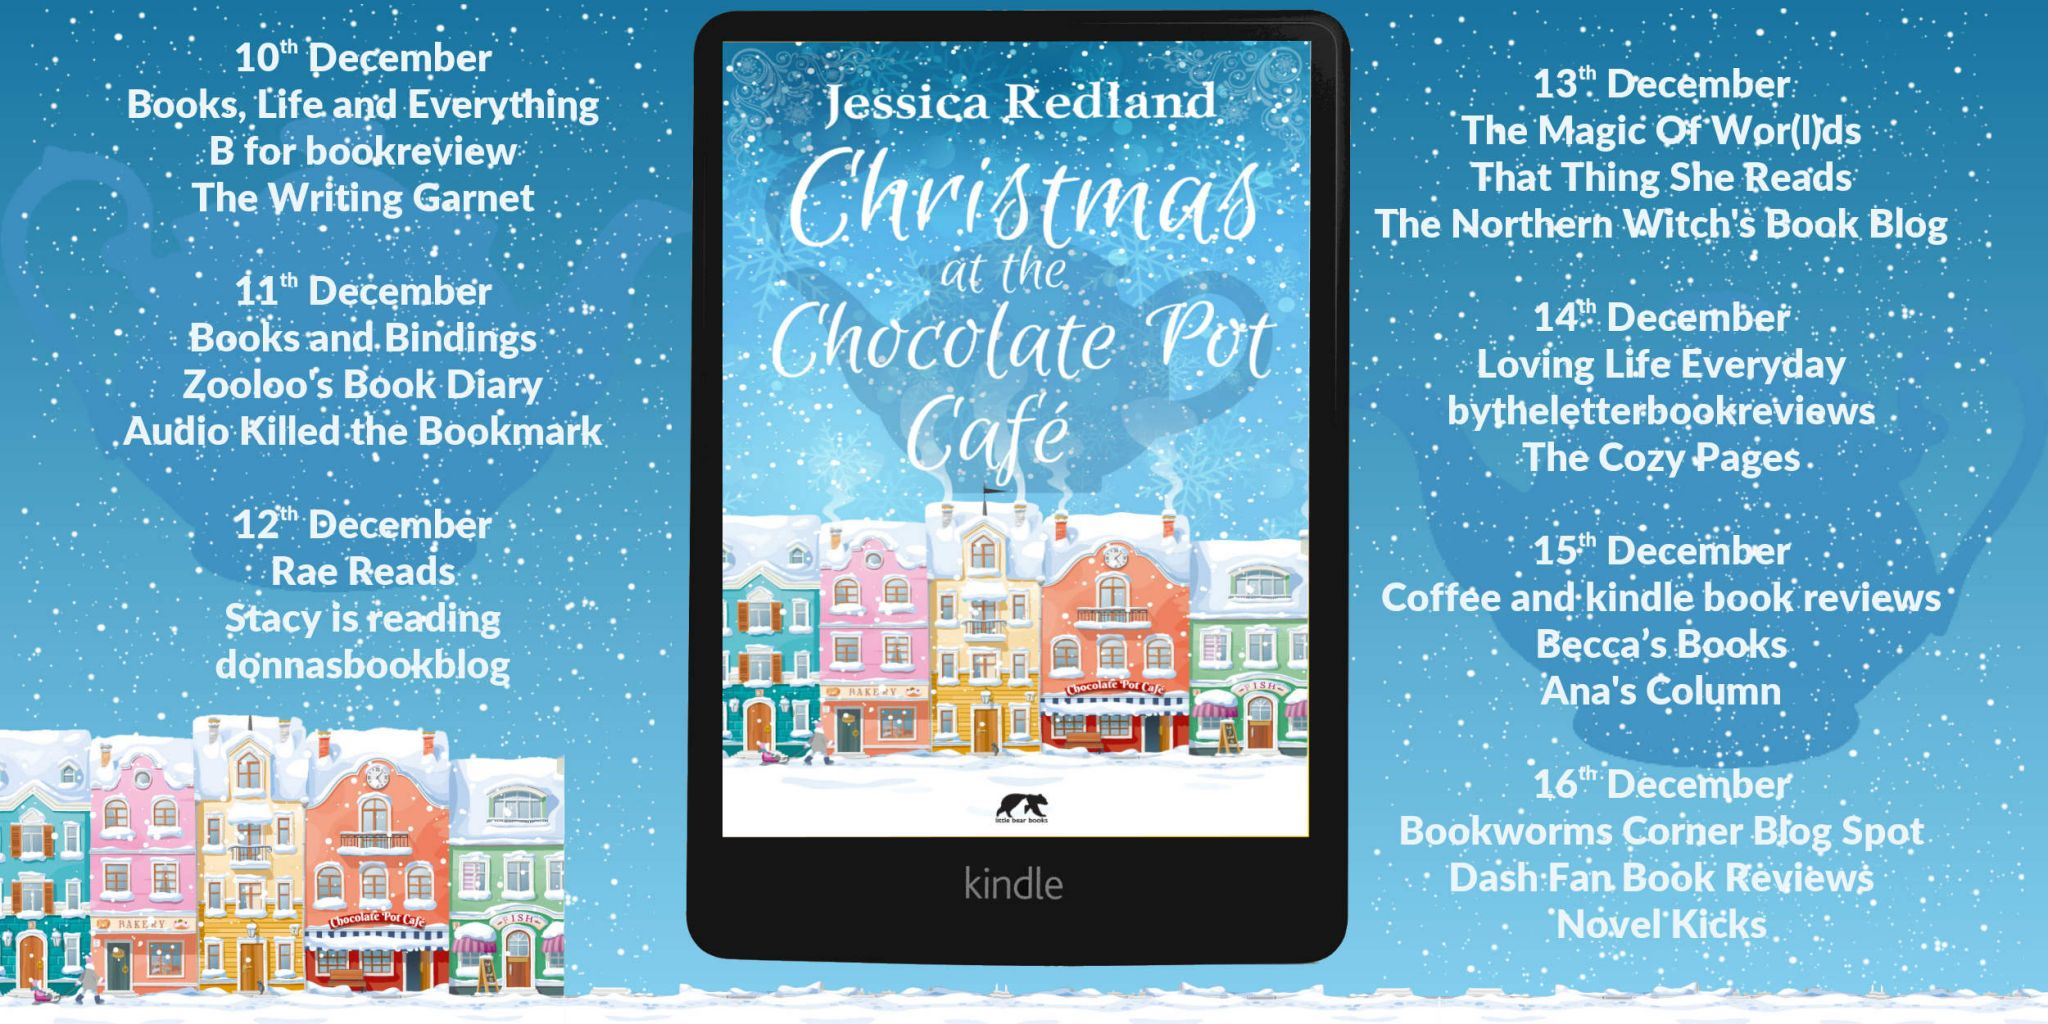 #BookReview of Christmas at the Chocolate Pot Cafe by Jessica Redland @JessicaRedland @rararesources